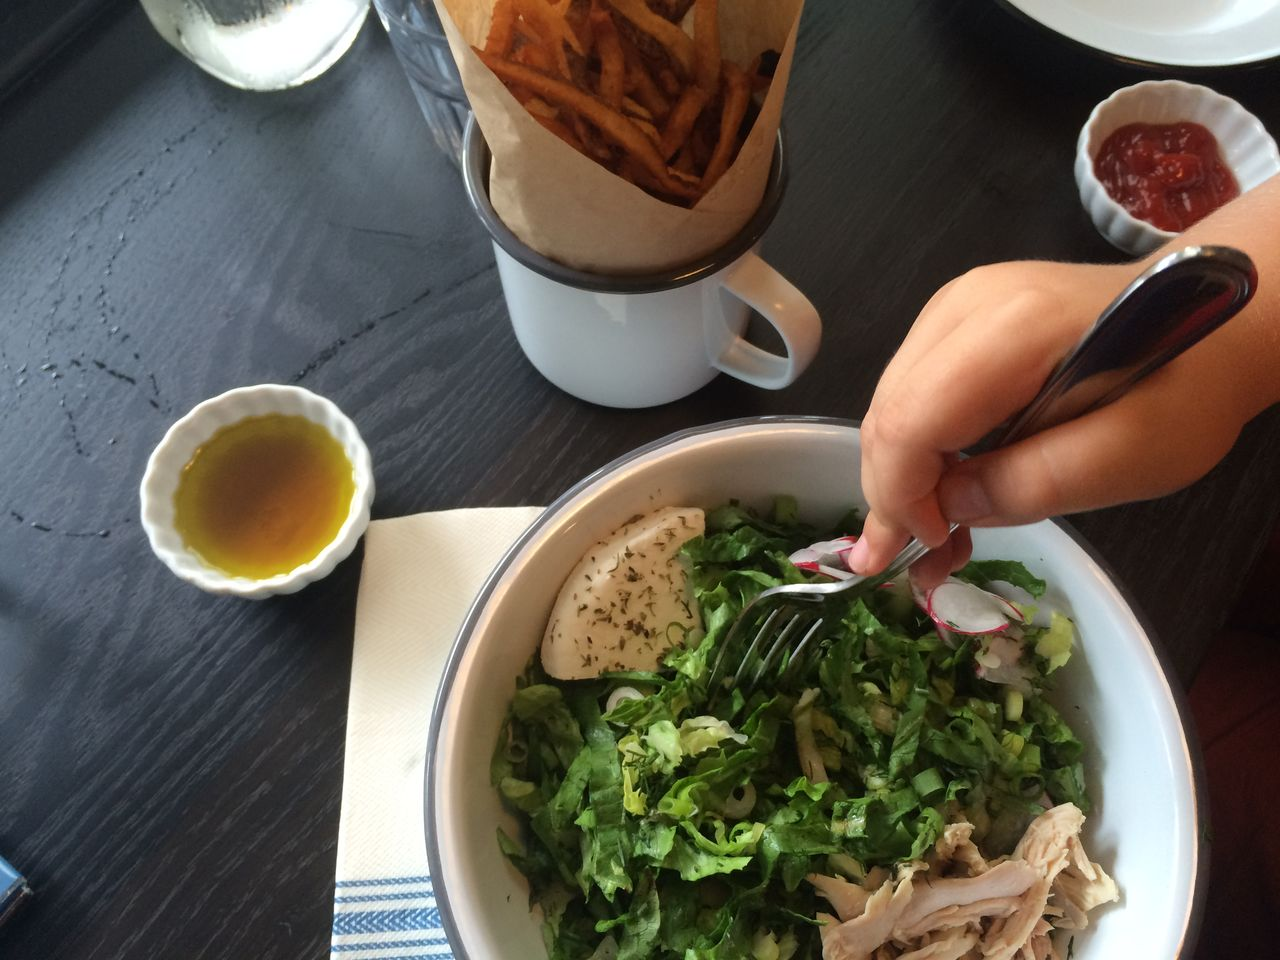 Cropped image of hand holding fork in food on table